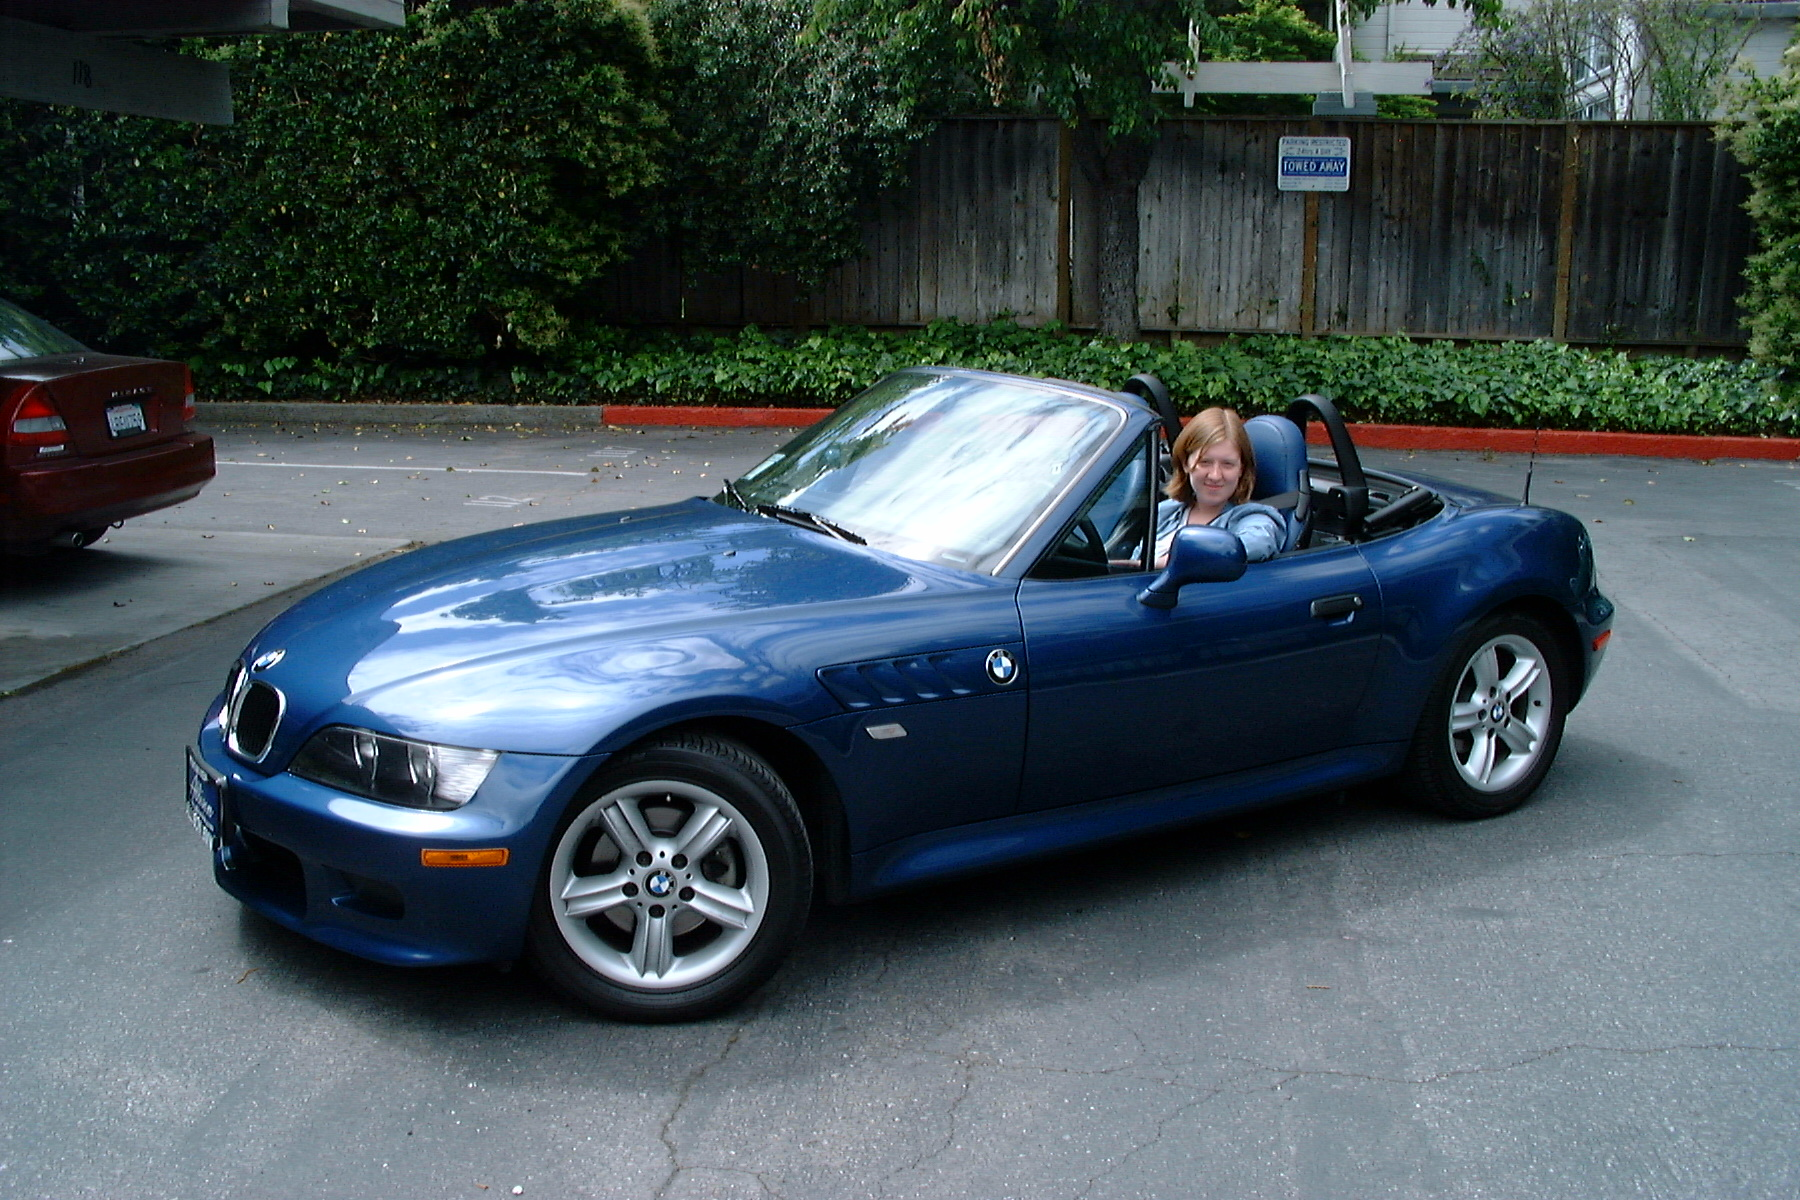 2000 Bmw Z3 2 5l 6cyl Warrantied To May 2007 Amp Below Market Value